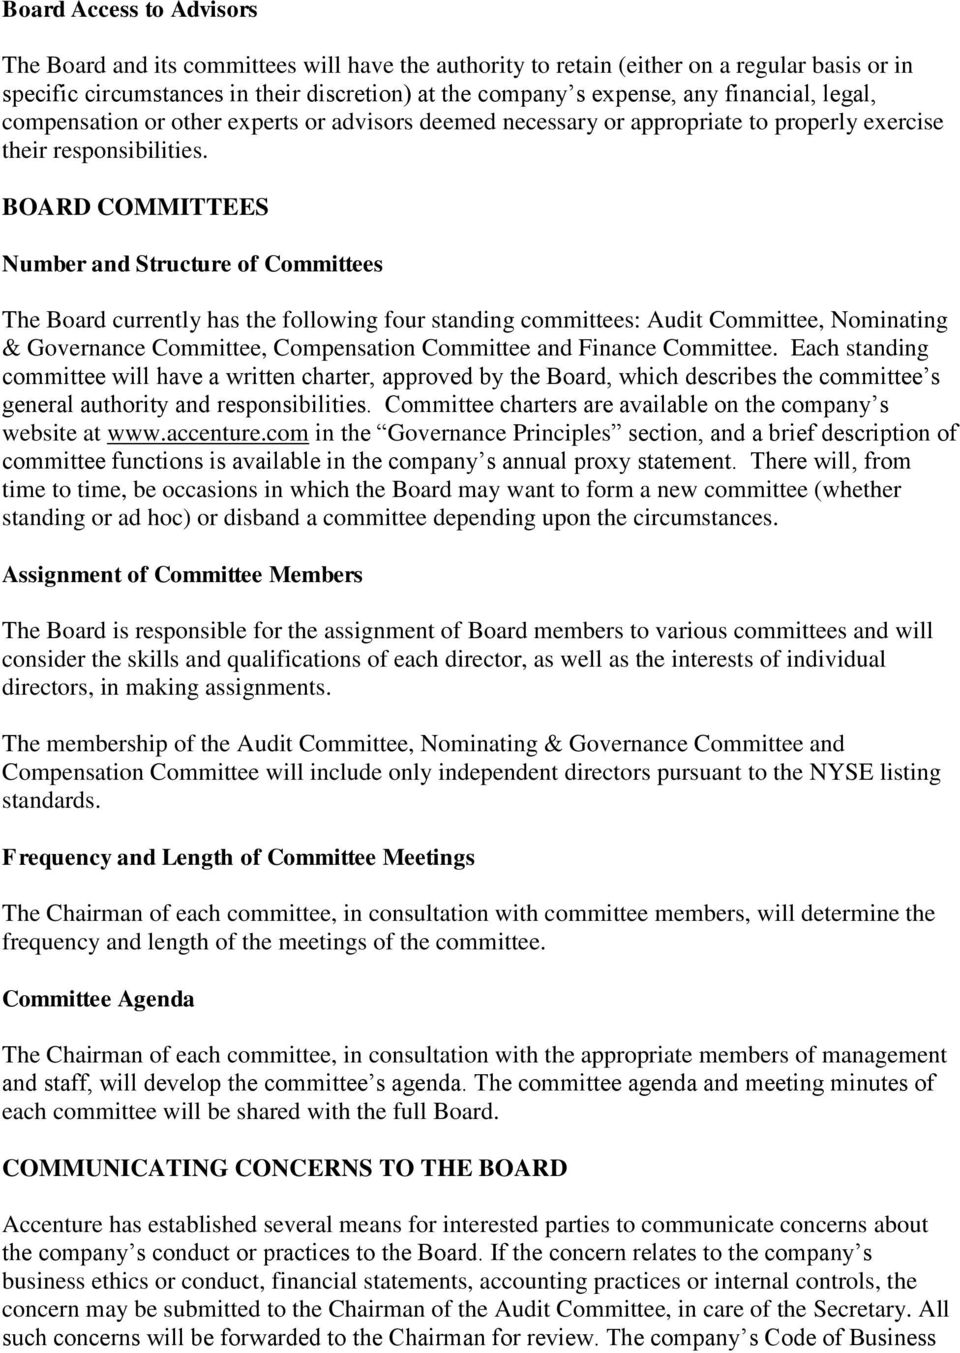 BOARD COMMITTEES Number and Structure of Committees The Board currently has the following four standing committees: Audit Committee, Nominating & Governance Committee, Compensation Committee and